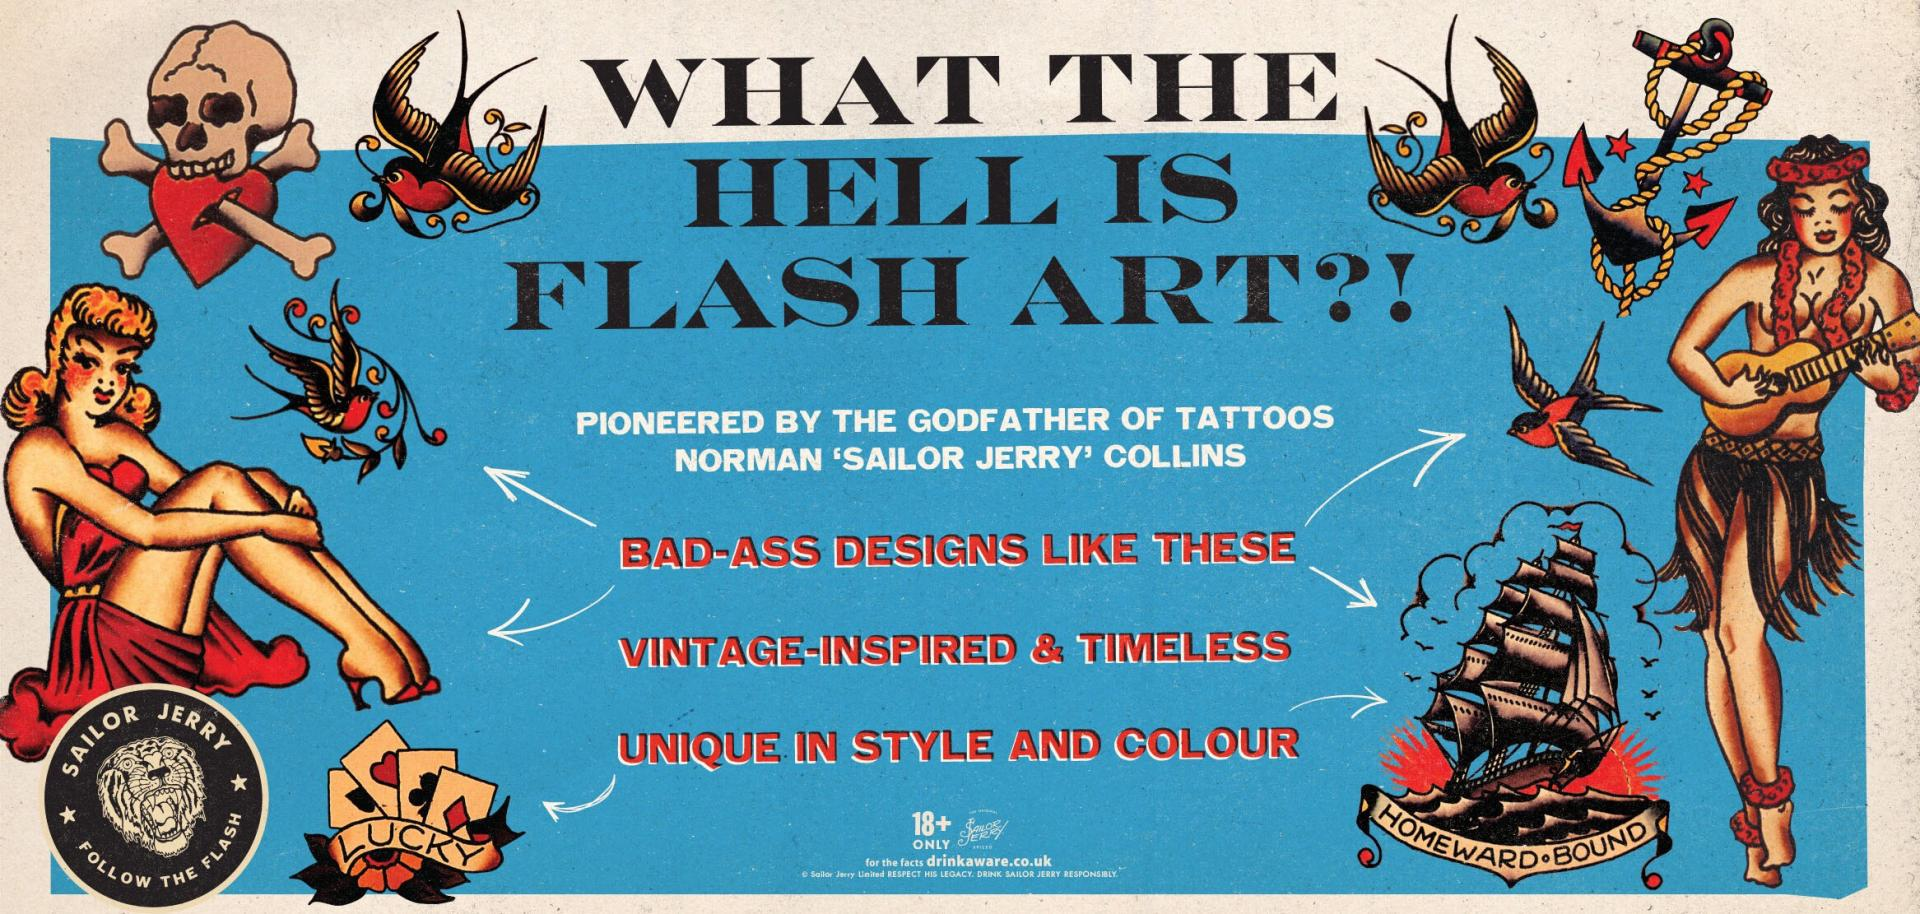 Follow The Flash In Scotland Gigs Events Hosted By Sailor Jerry